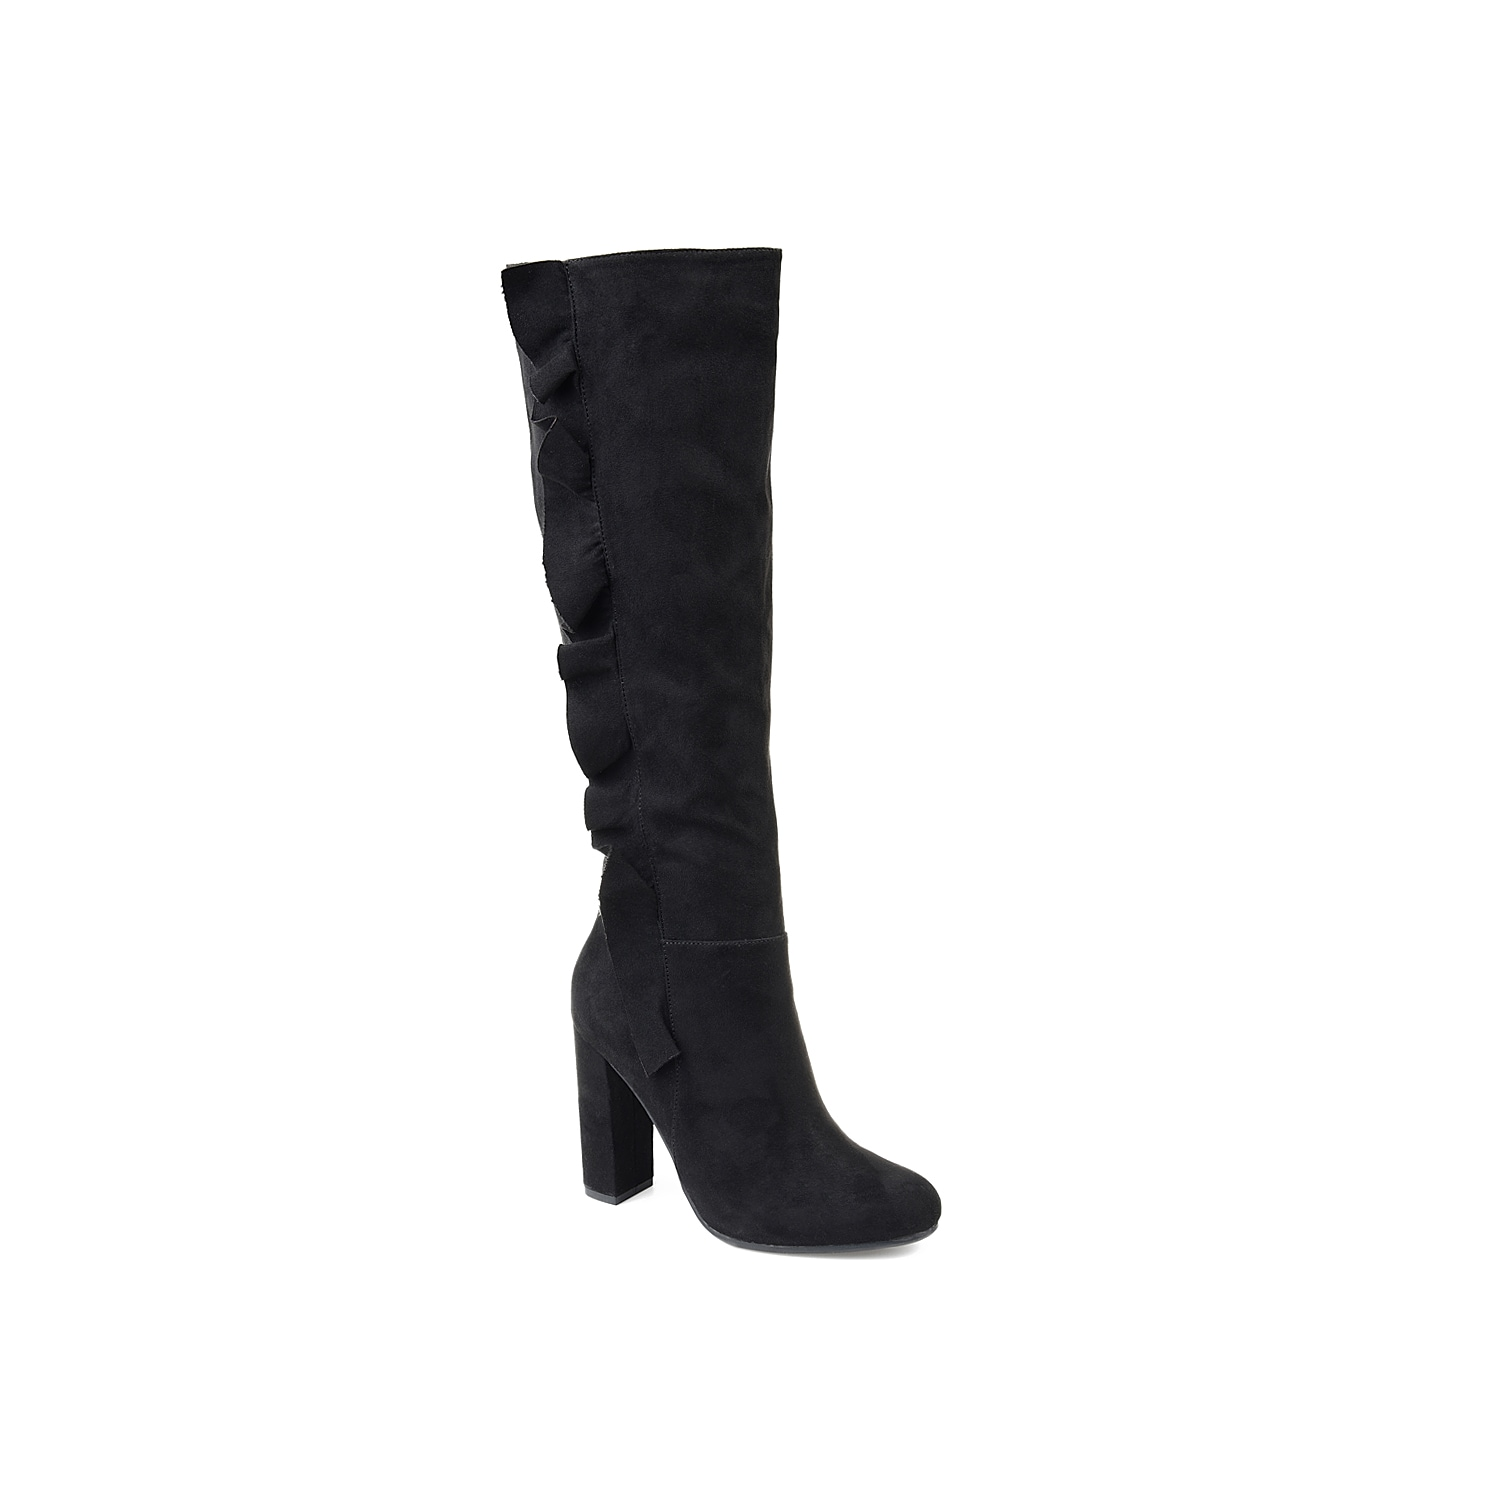 Enchant all who pass by in the Vivian boot from Journee Collection. These tall boots feature a confident-inducing block heel and a ruffle accent up the shaft for a feminine finish. Click here for Boot Measuring Guide.